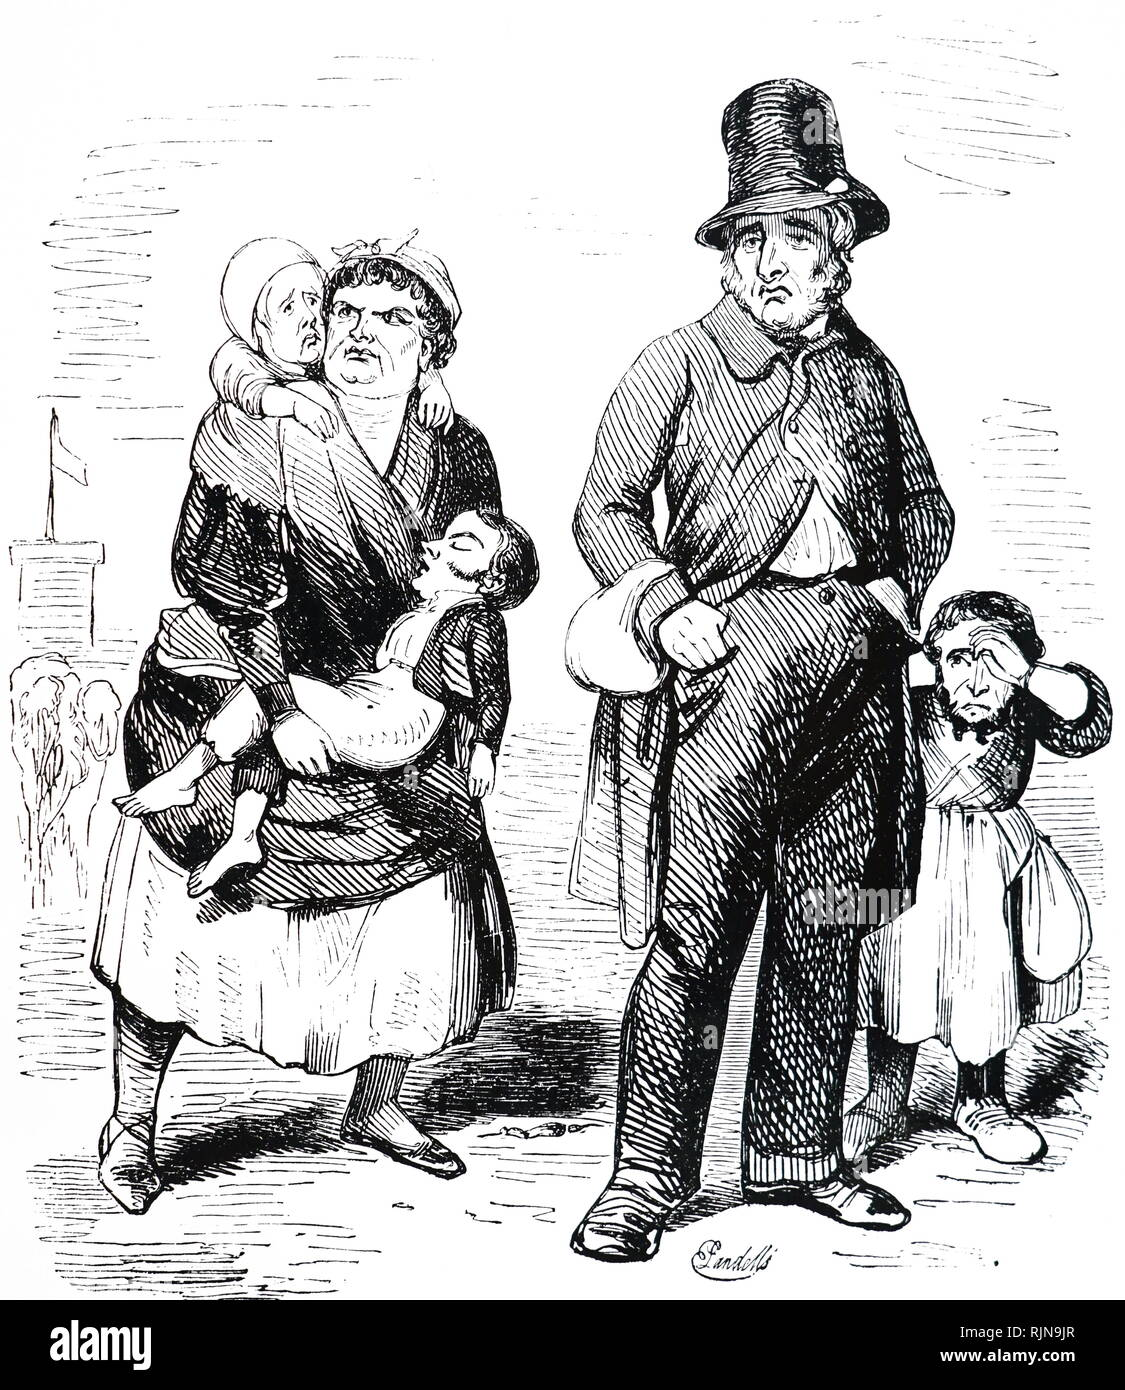 A cartoon depicting Members of Parliament without a home because of the strike of masons during the building of the new Palace of Westminster. Dated 19th century Stock Photo